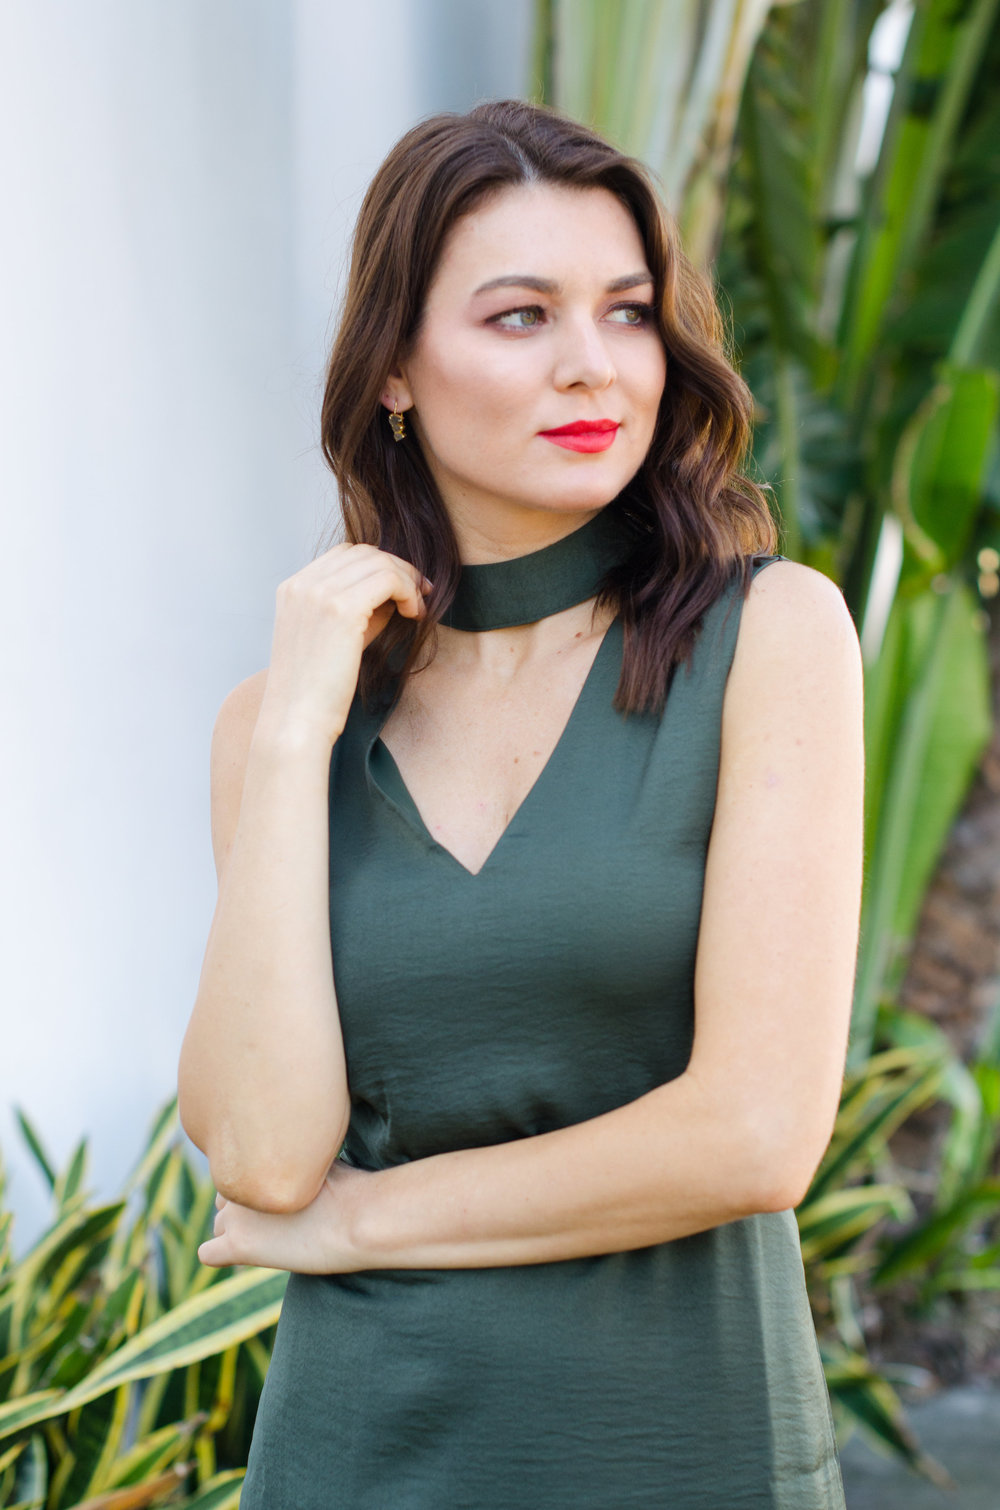 tampabay_stpete_florida_portrait_photographer_canvas_boutique_green_dress.jpg